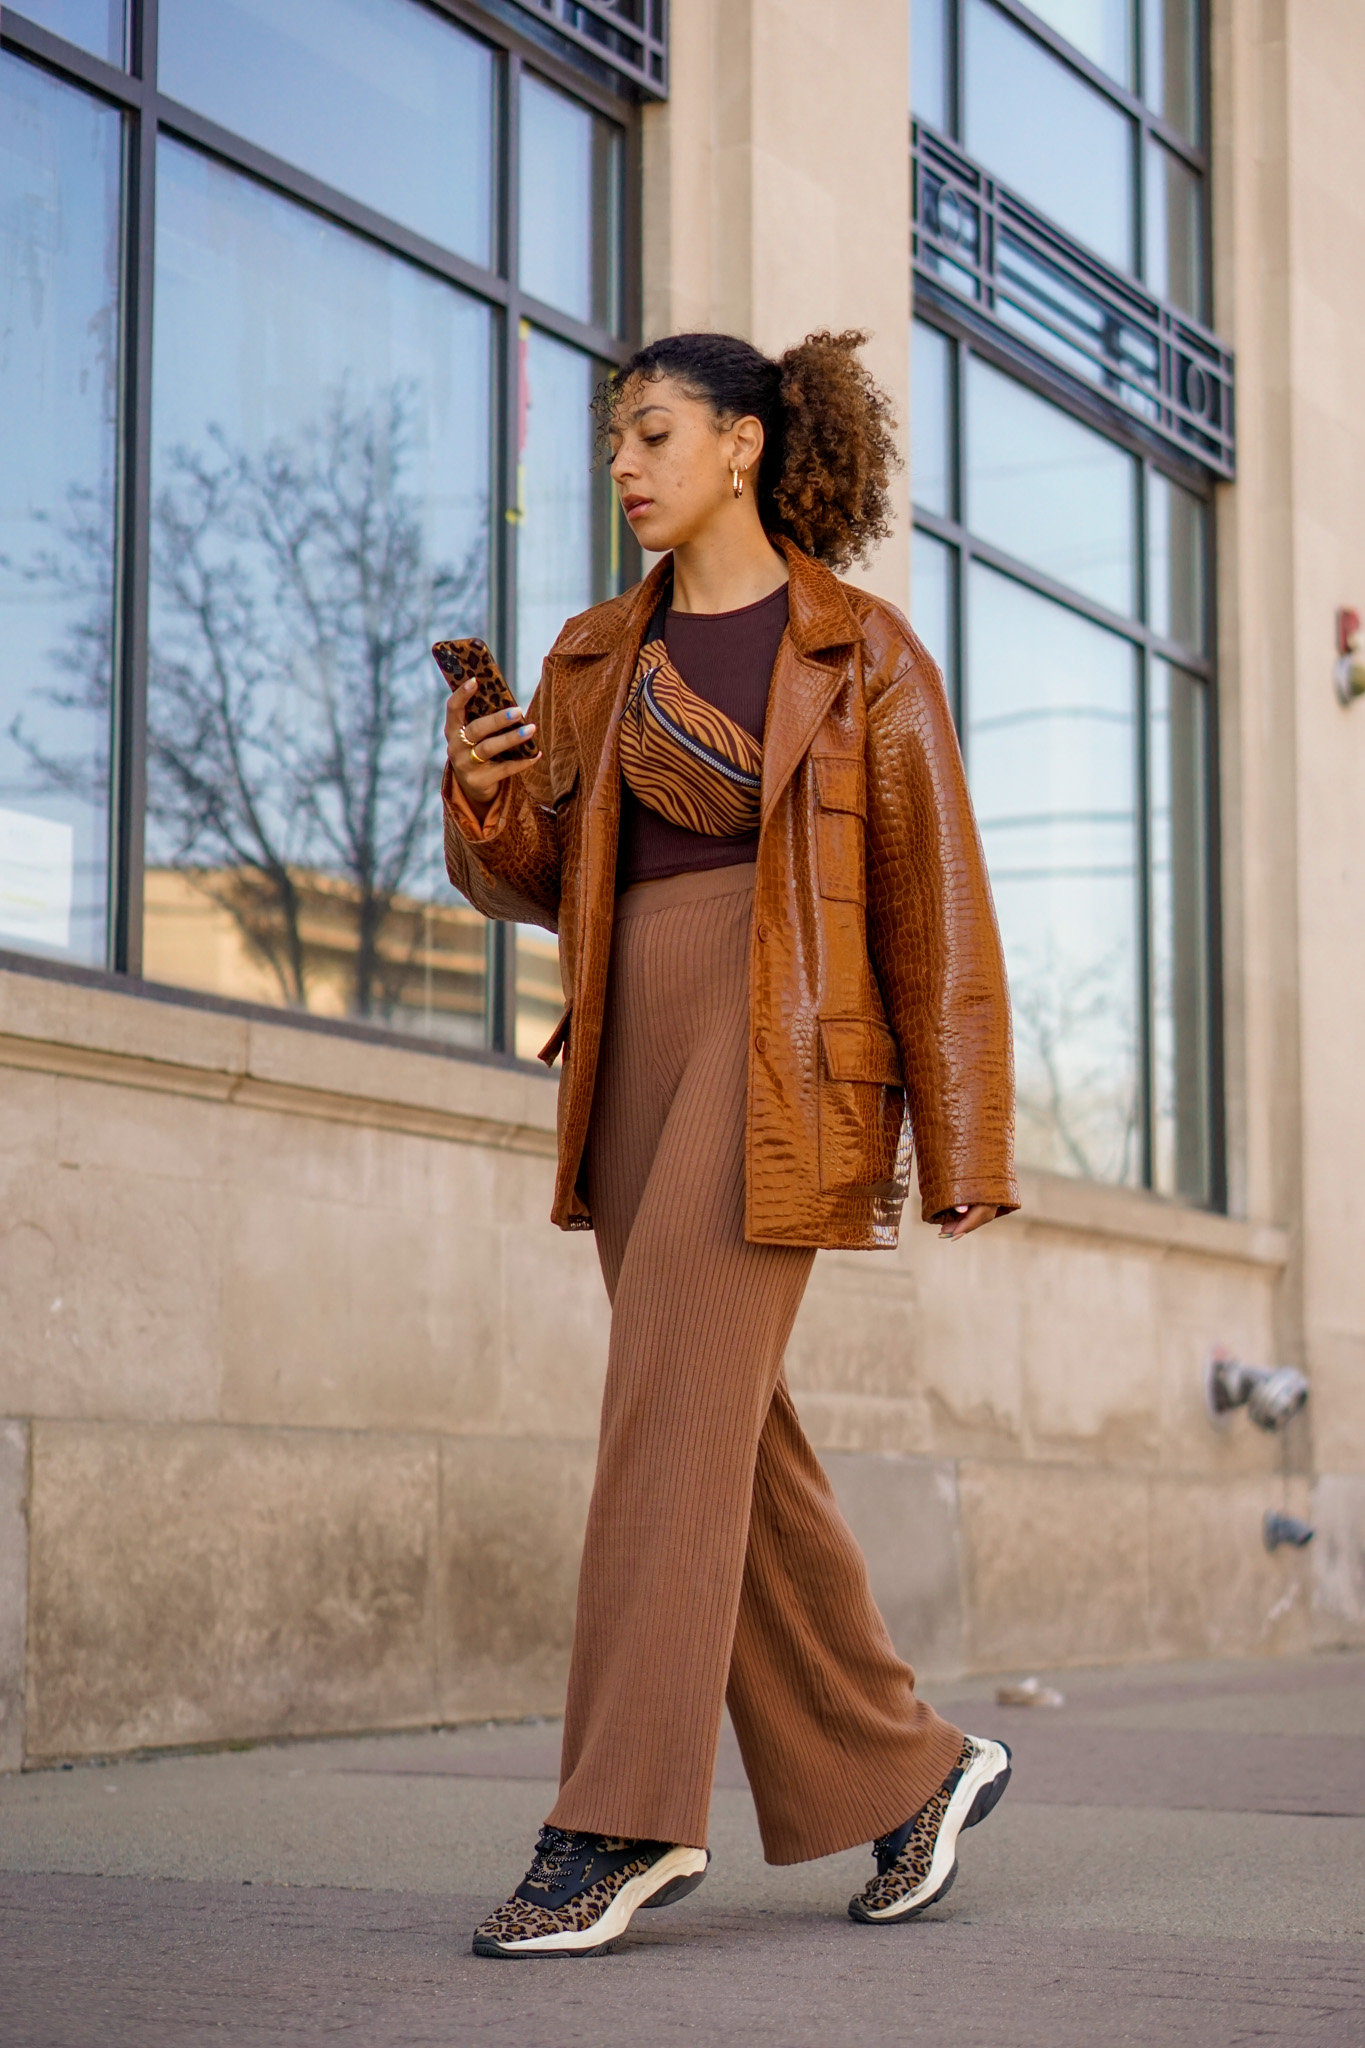 brown jacket outfit ideas, black fashion blogger, brown jacket outfit street style, spring fashion black girl, spring fashion, brown jacket outfits black girl